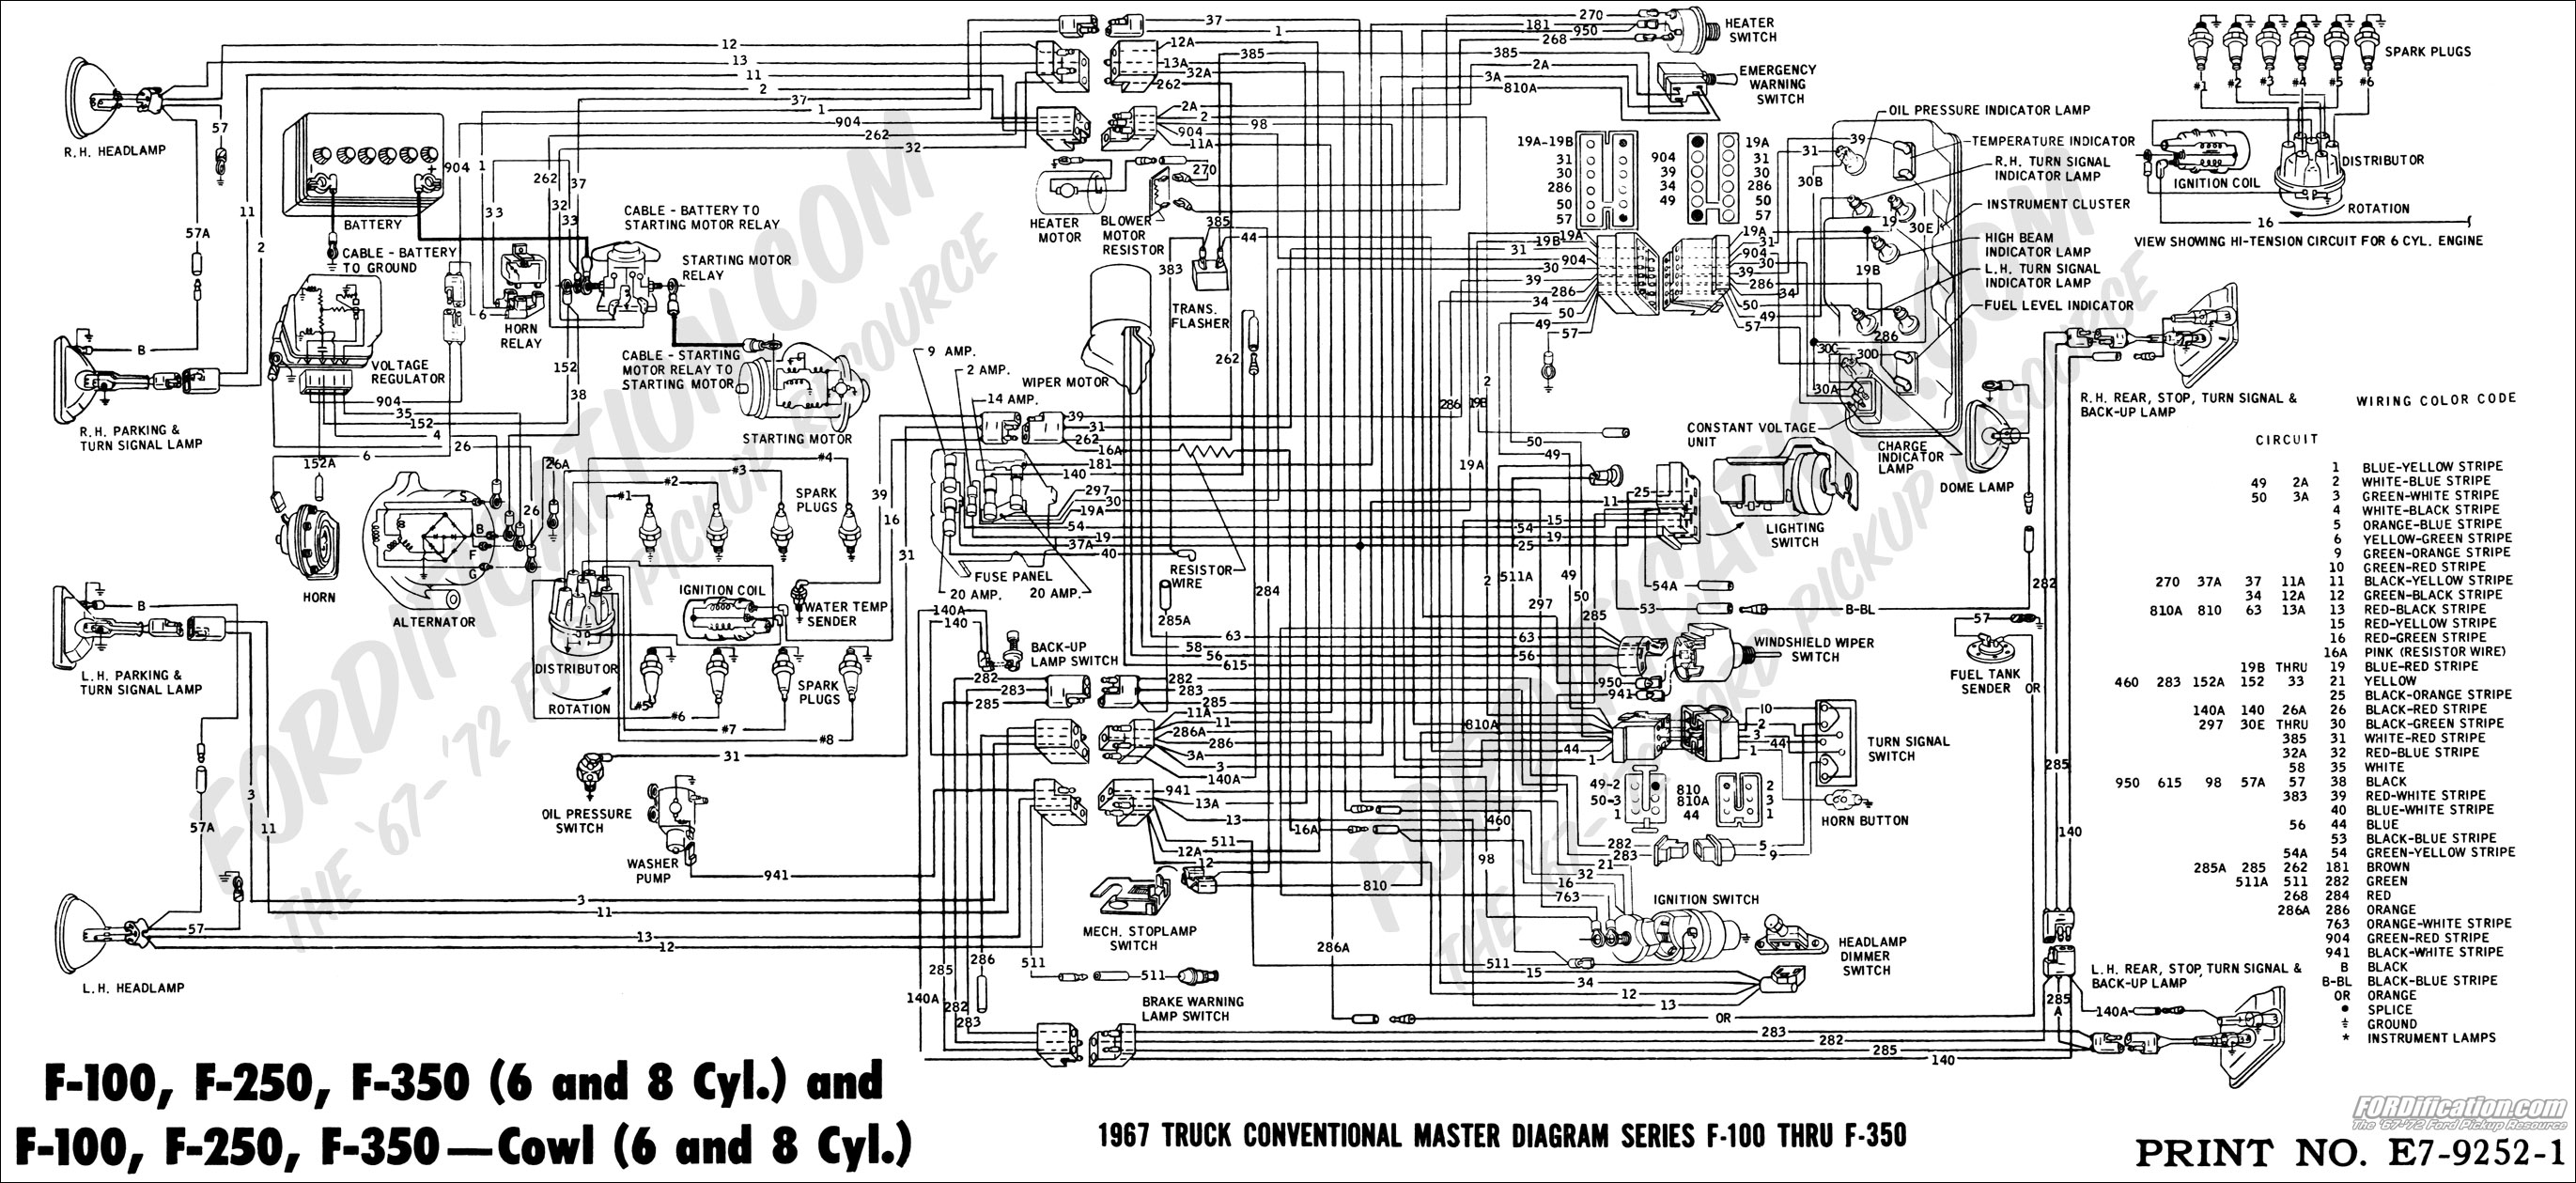 67masterdiagram ford truck technical drawings and schematics section h wiring 1992 ford f150 alternator wiring diagram at mifinder.co